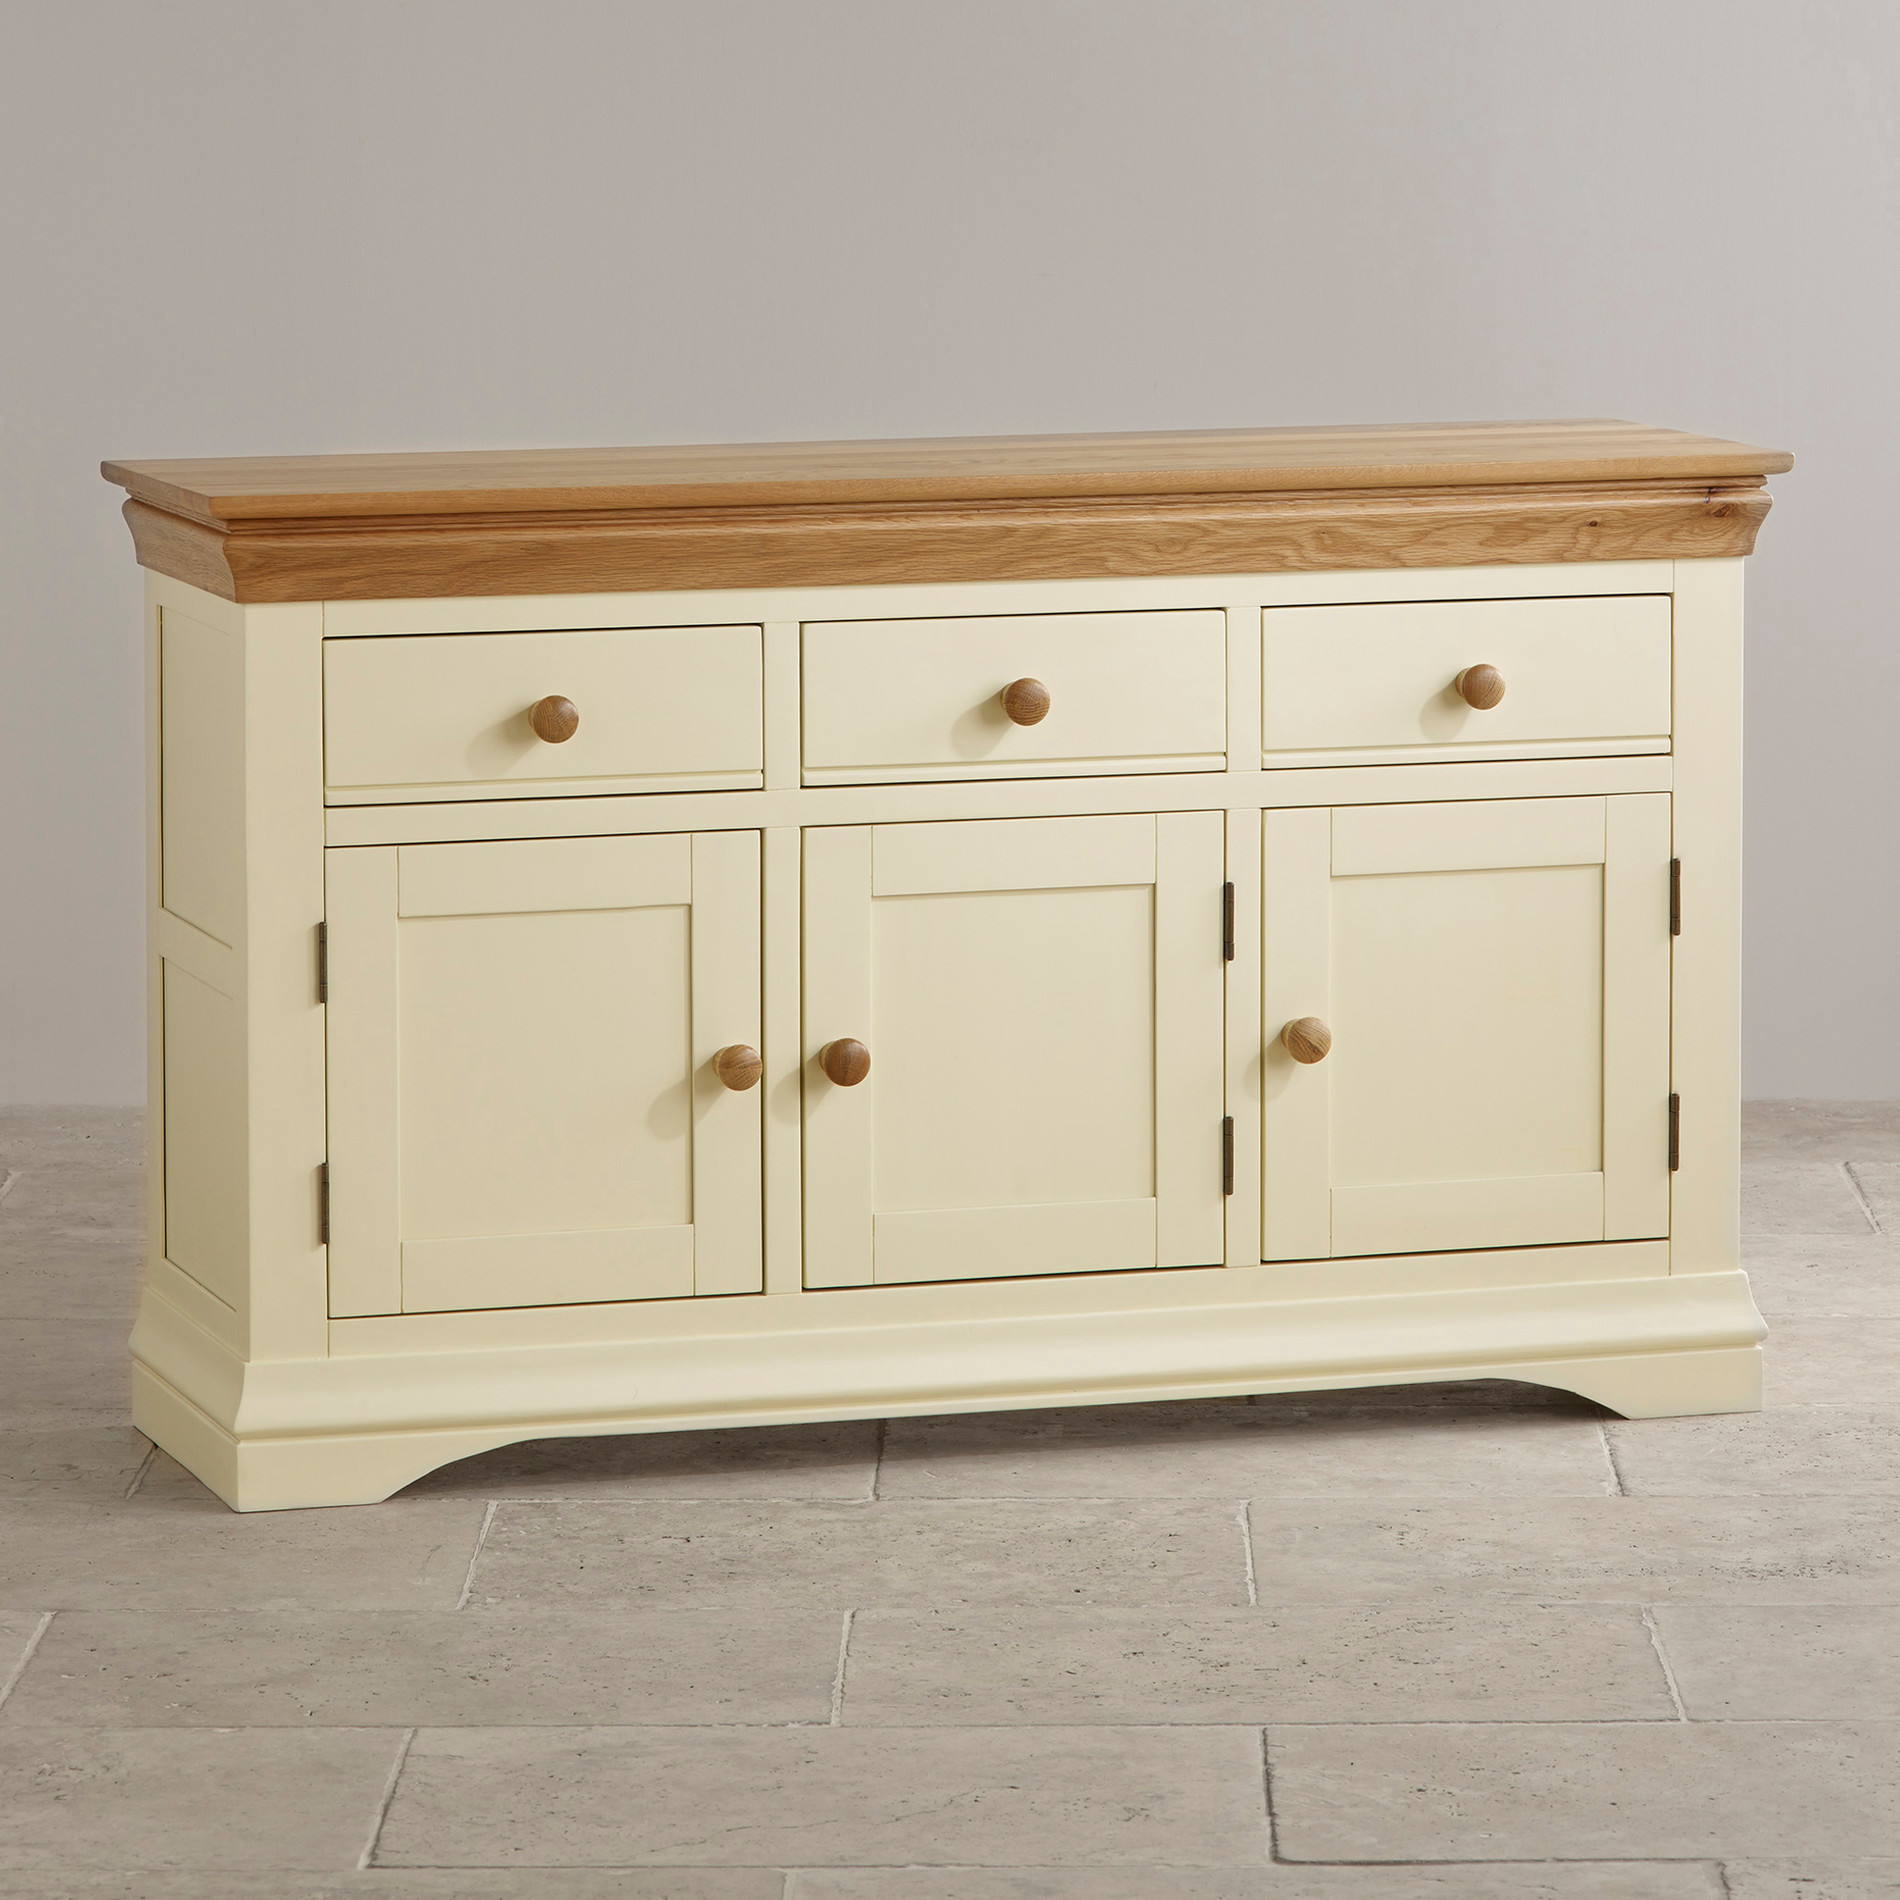 Country cottage natural oak large sideboard cream painted Images of painted furniture